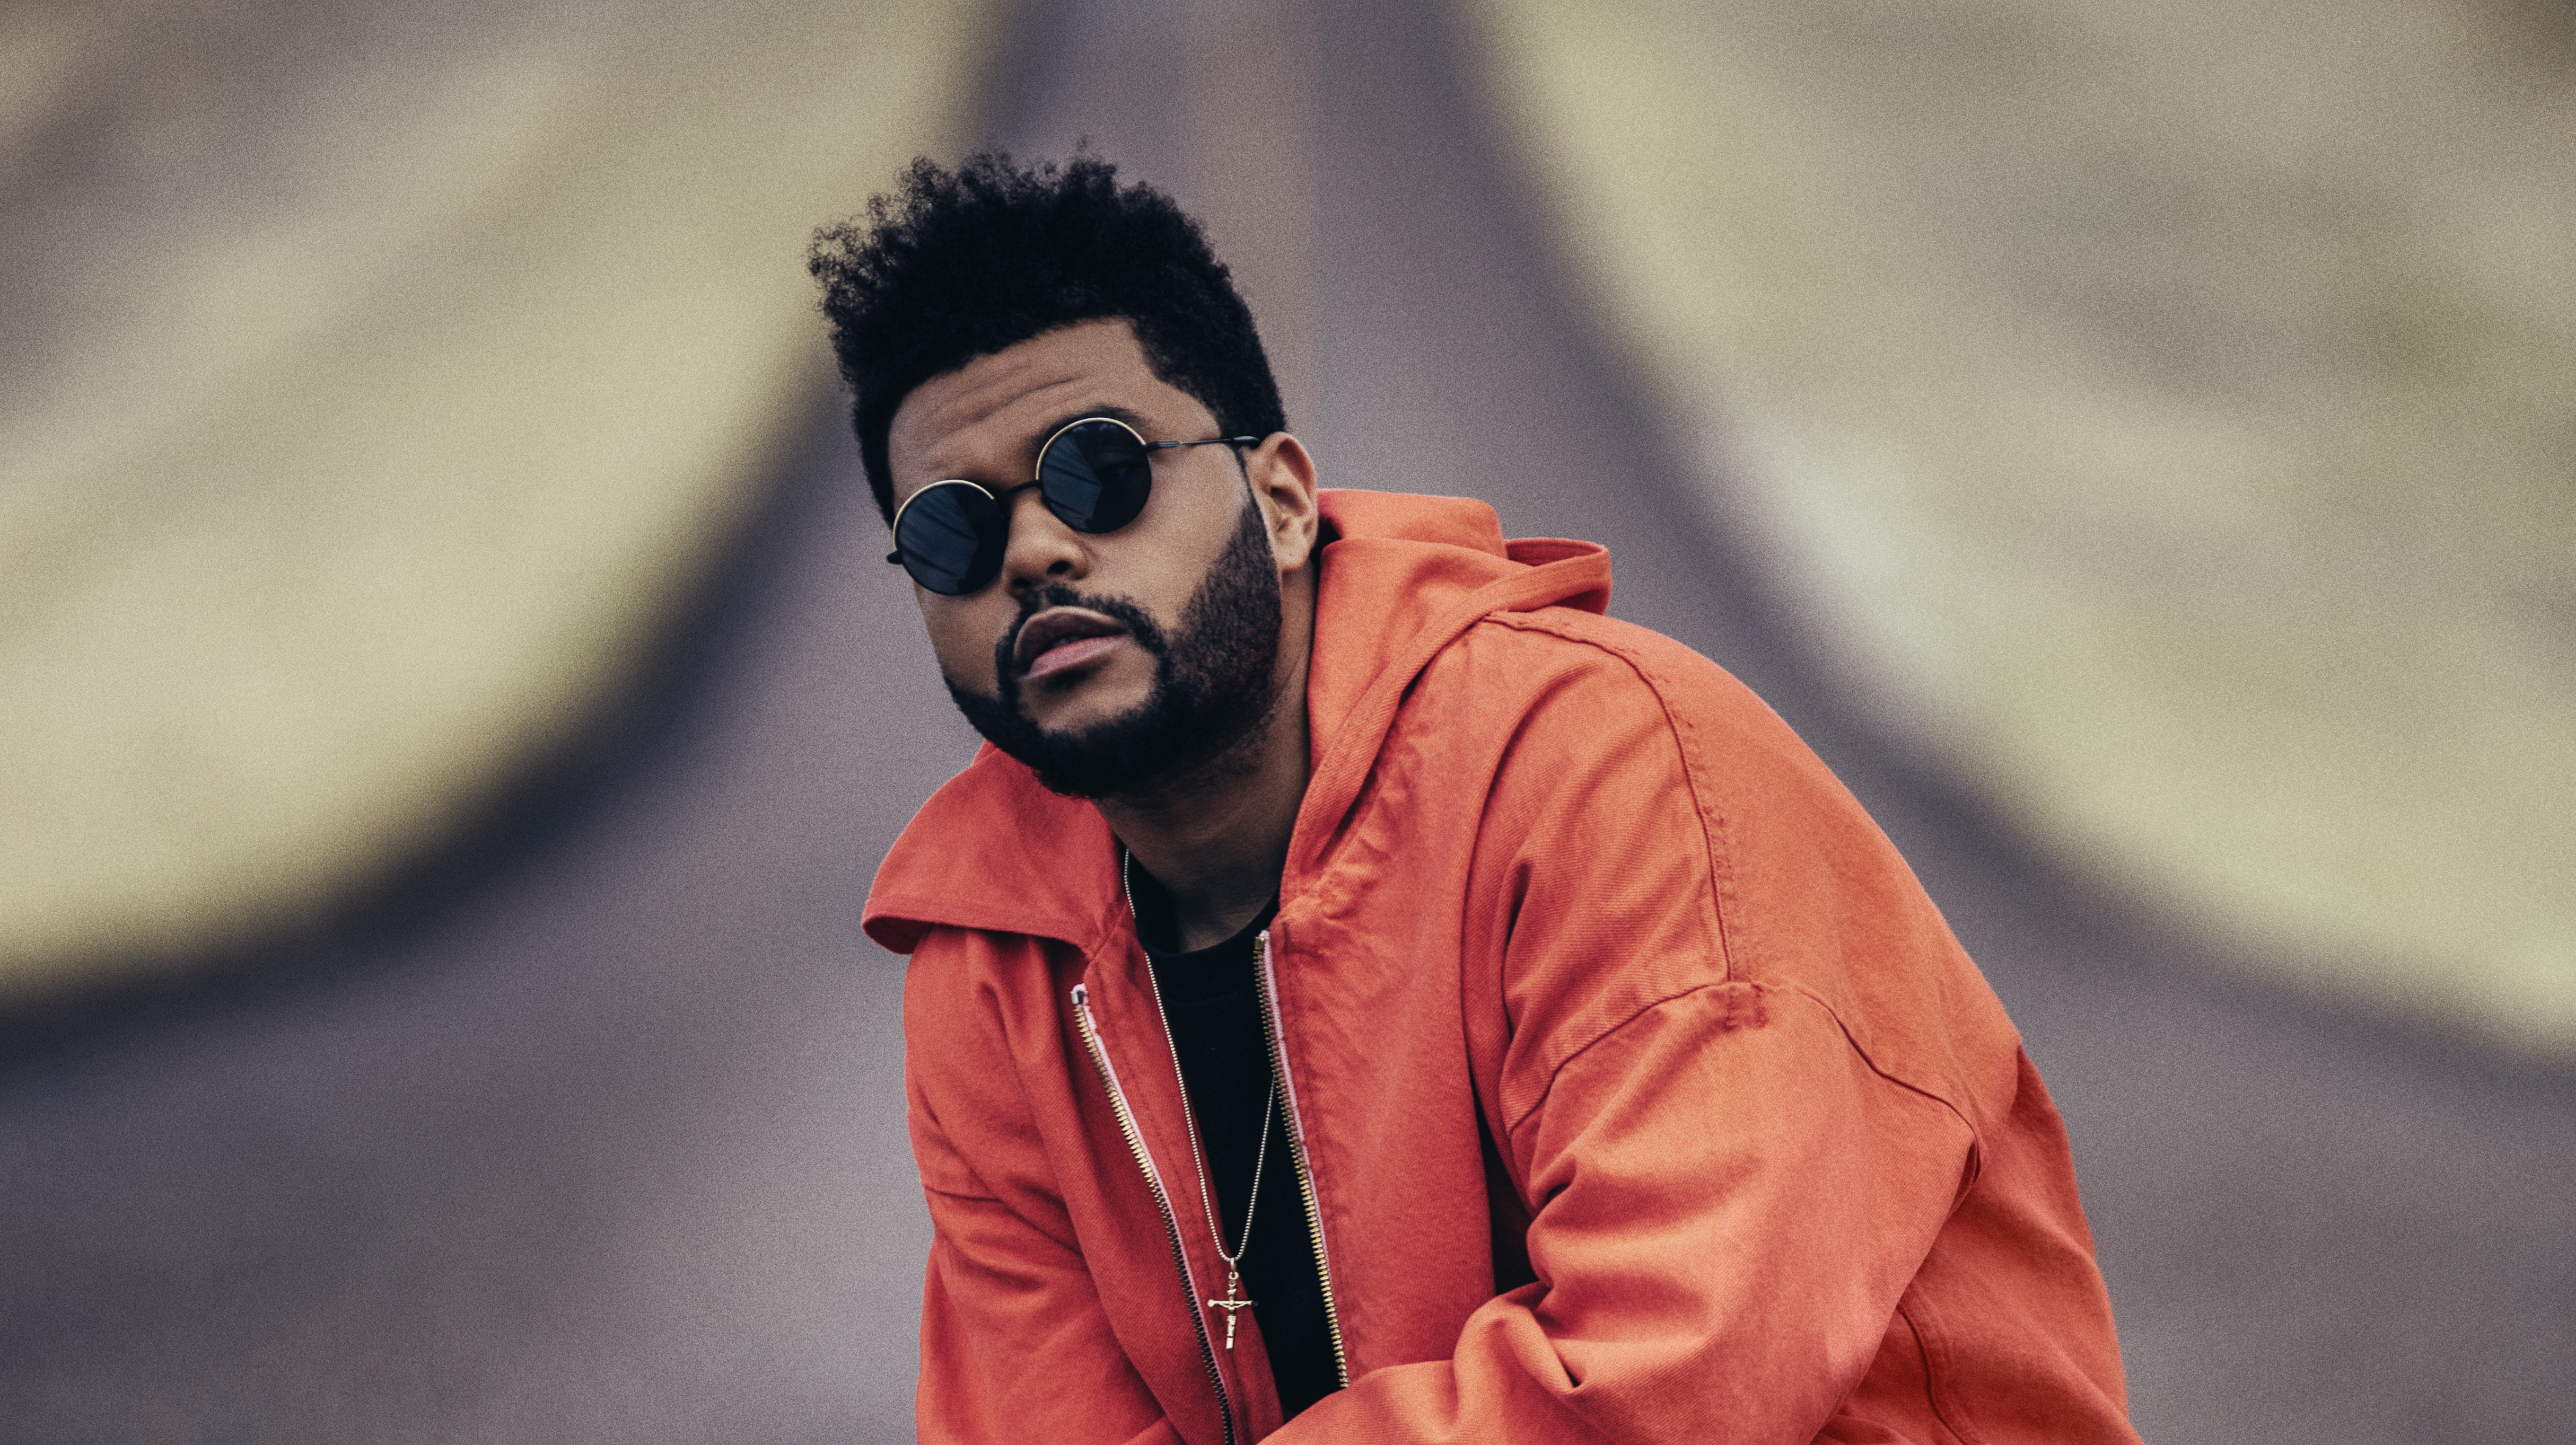 The Weeknd Puma X Xo 2018 Hd Music 4k Wallpapers Images